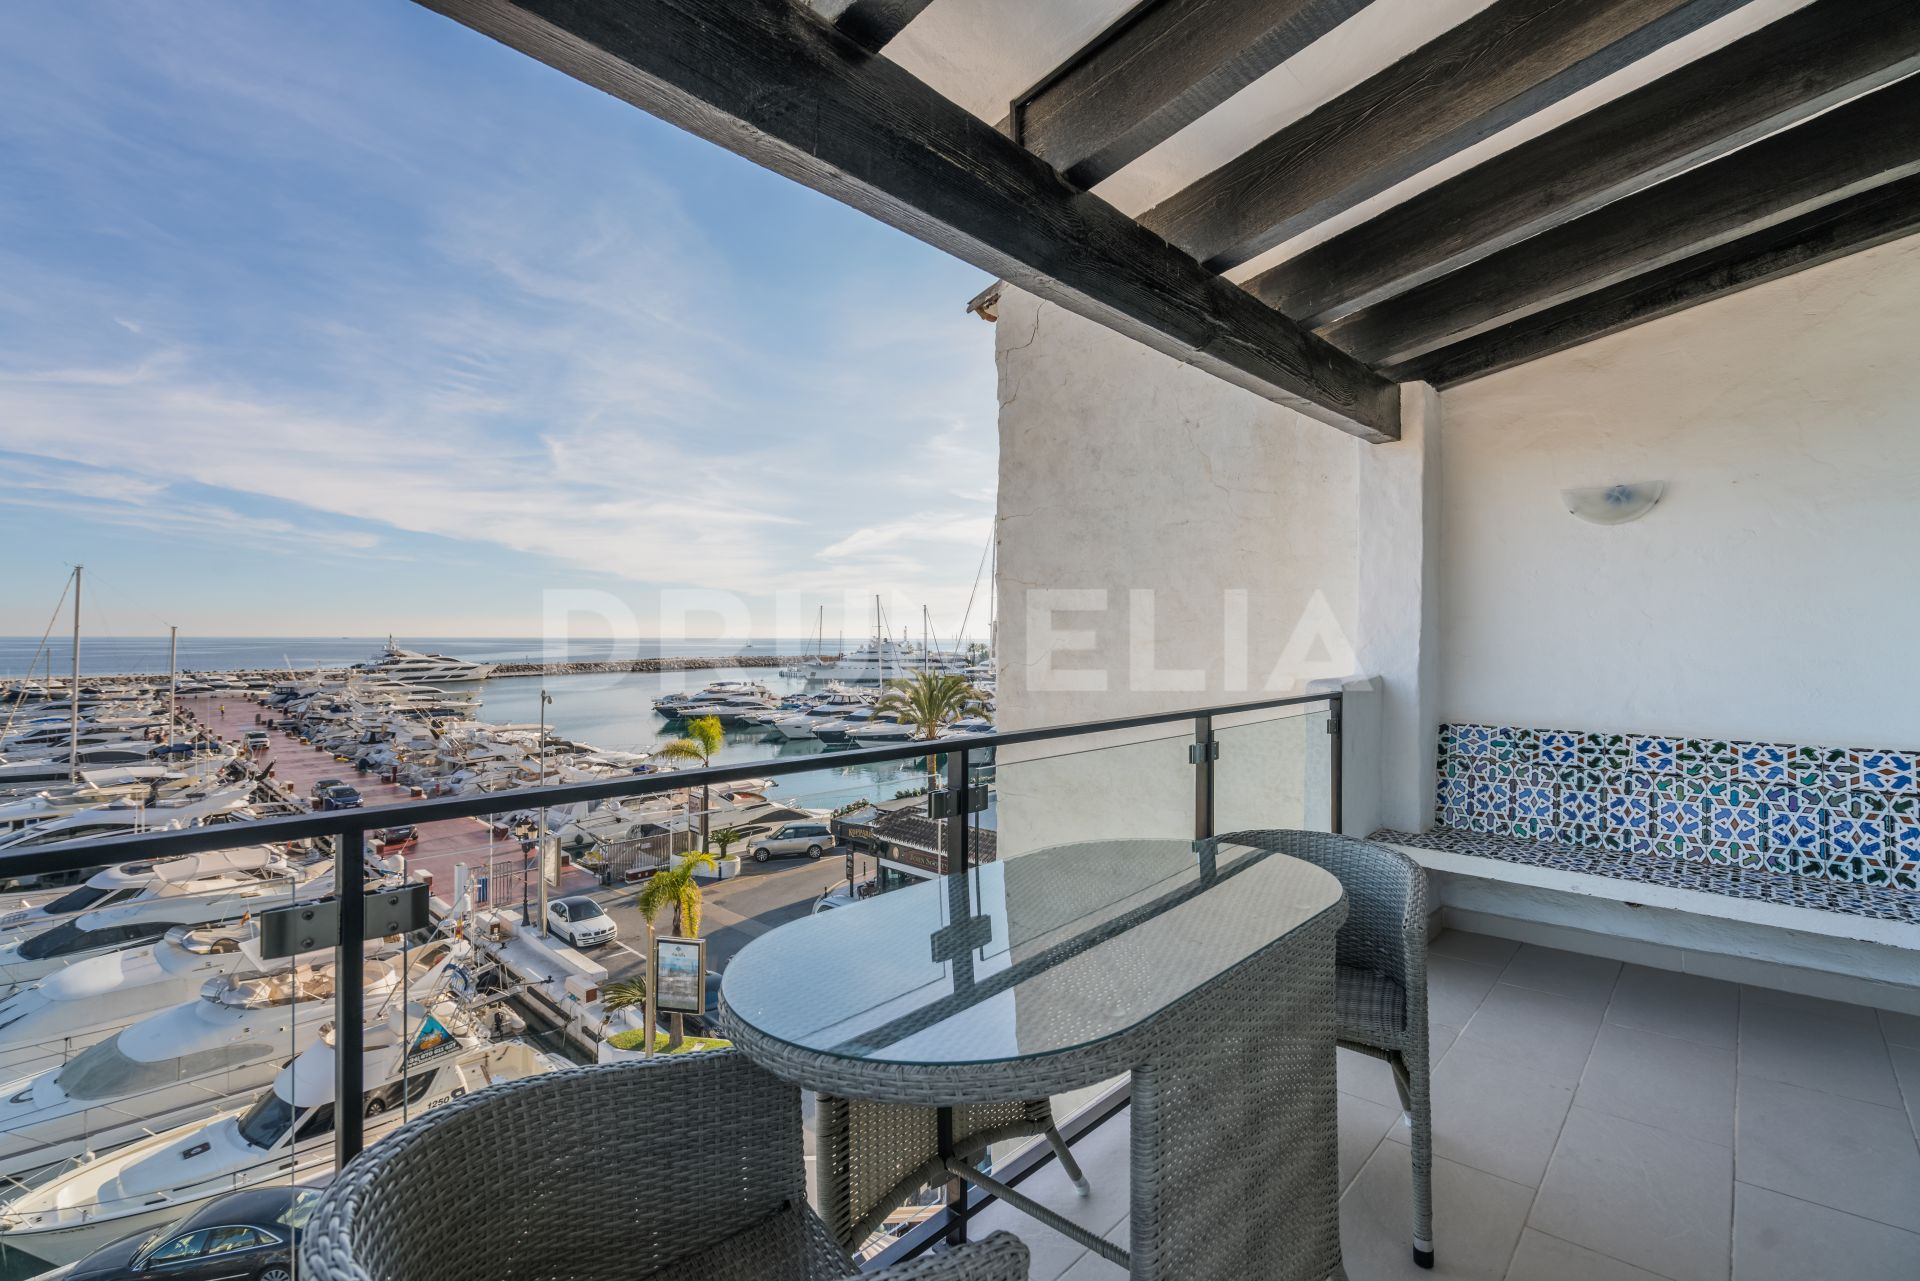 Marbella - Puerto Banus, Chic and Classy Frontline Beach Apartment in Puerto Banus, Marbella